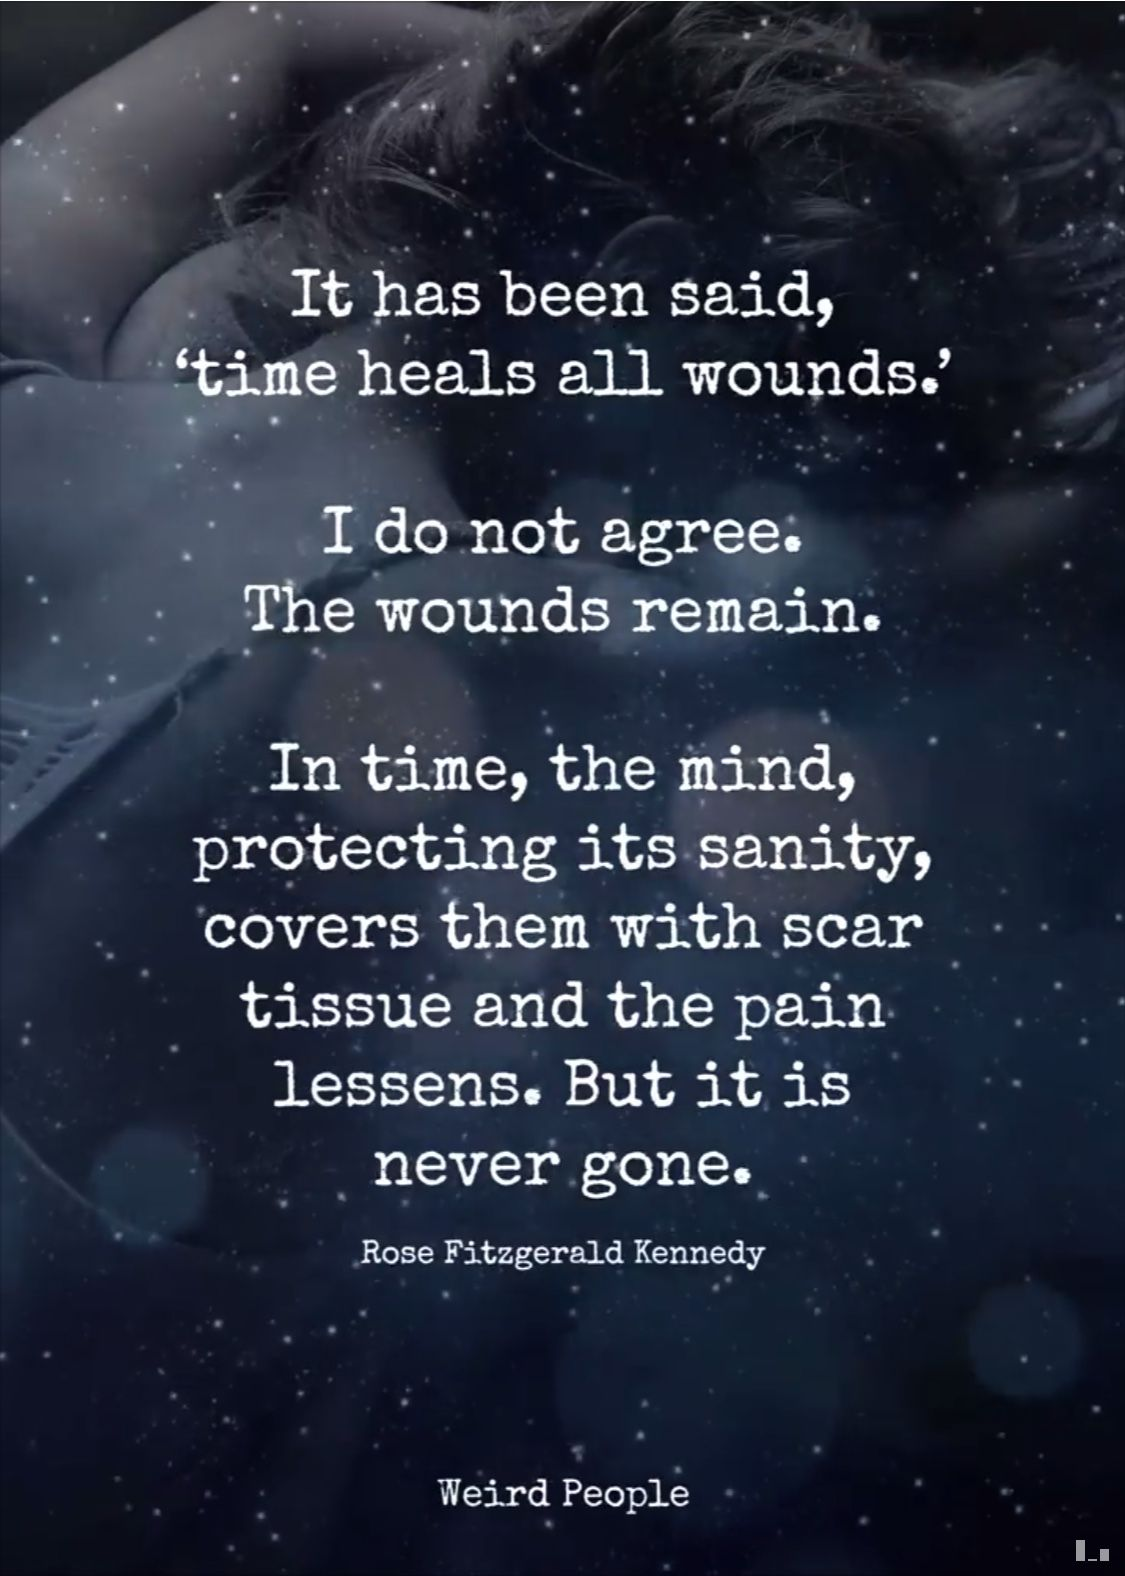 Quote About Time Healing Wounds